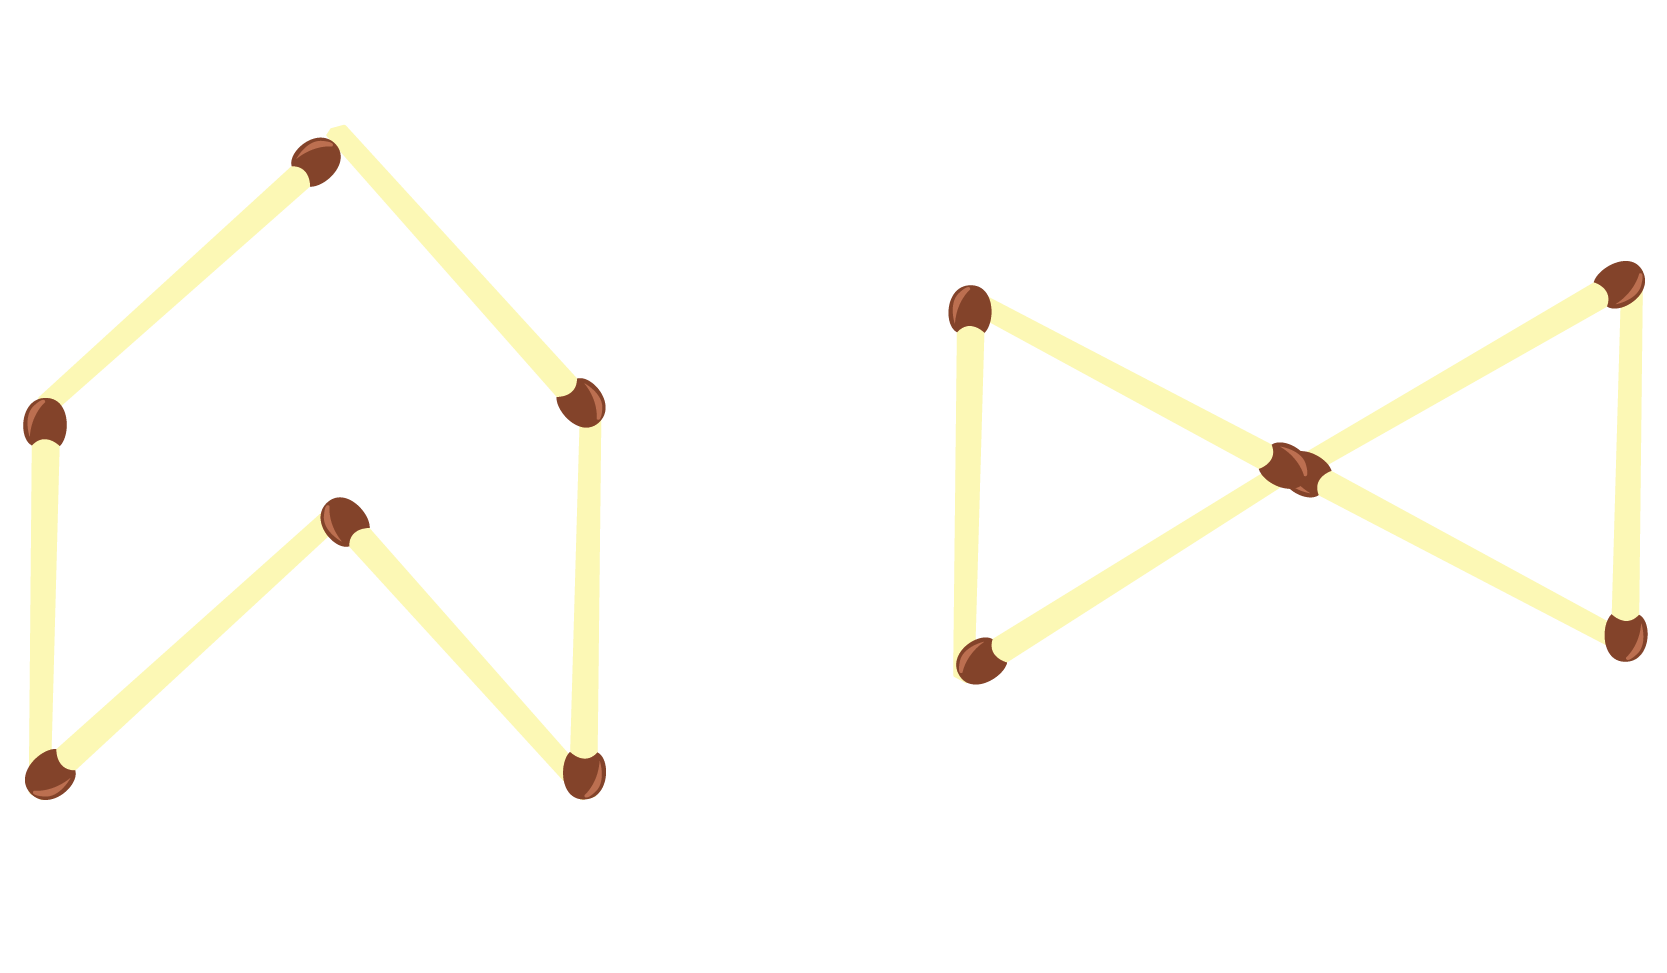 different shapes with 6 sides.